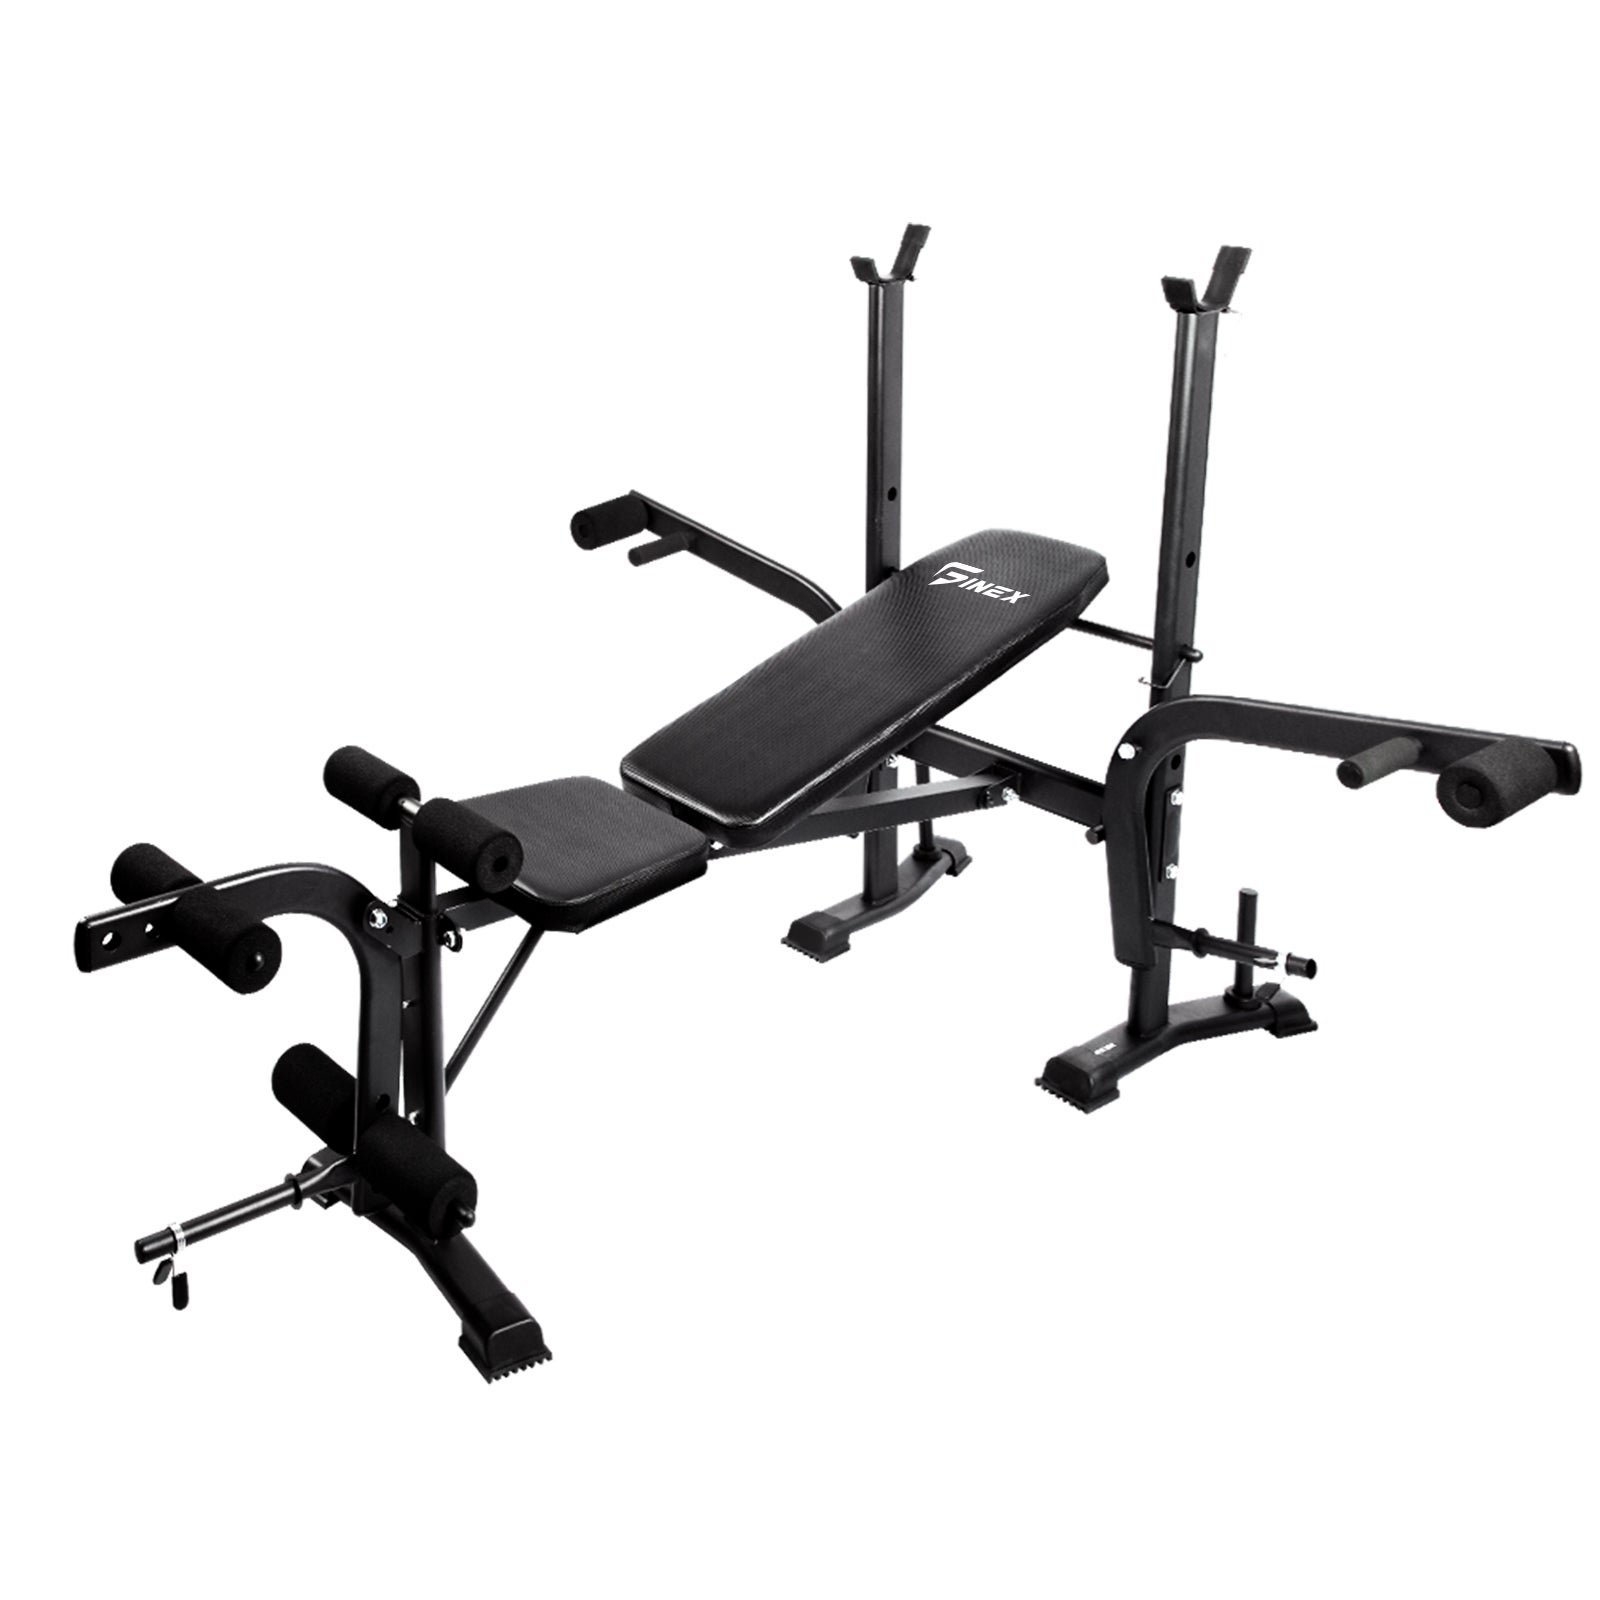 Weight Bench 8-in-1 Press Multi-Station